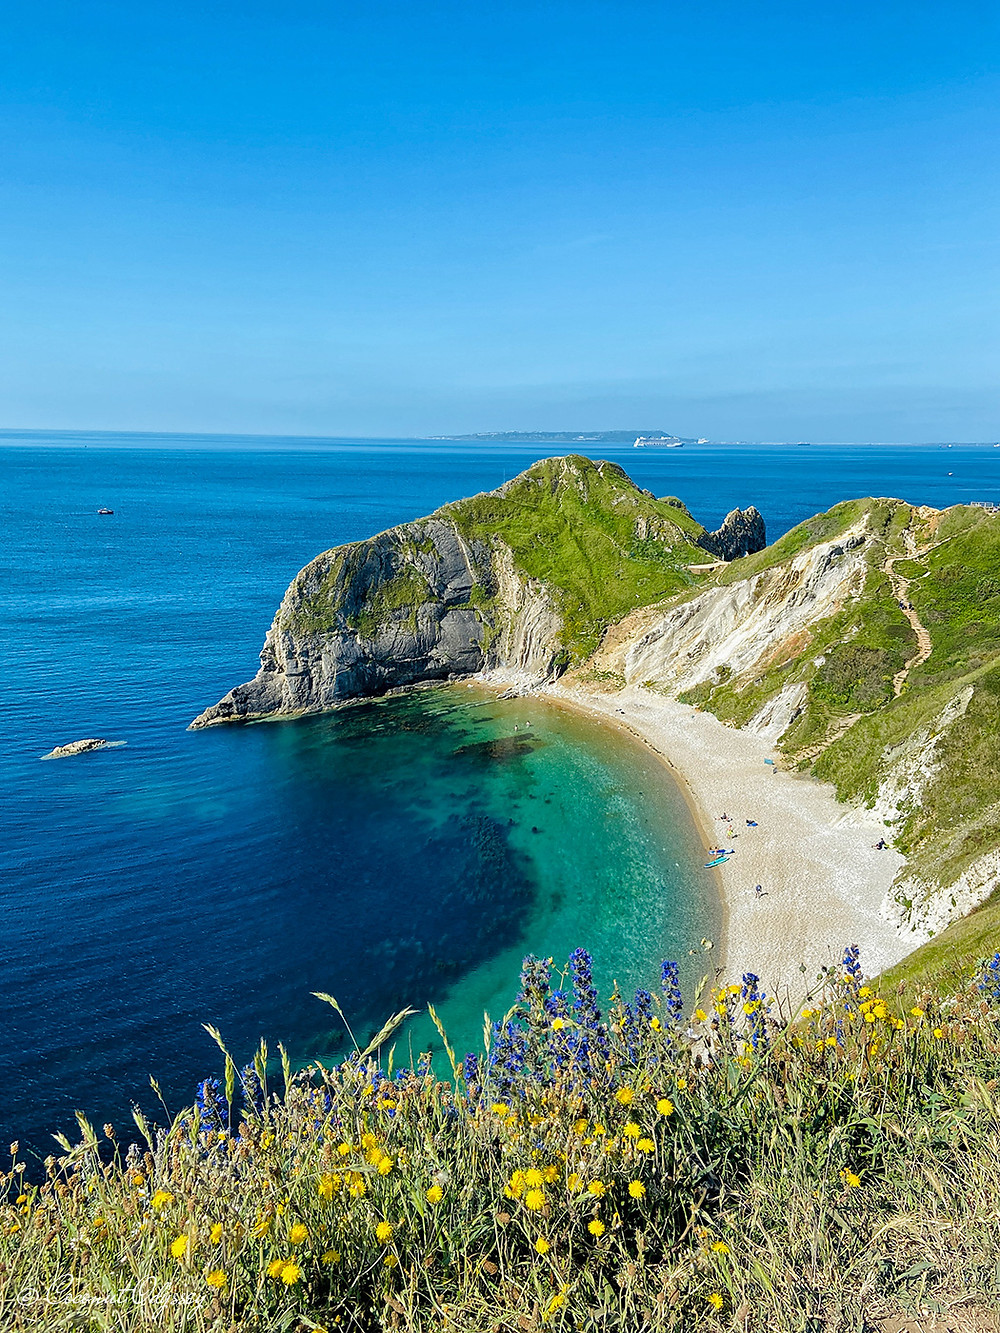 Man Owar Beach at Durdle Door is a curved secluded pebble beach with crystal clear water